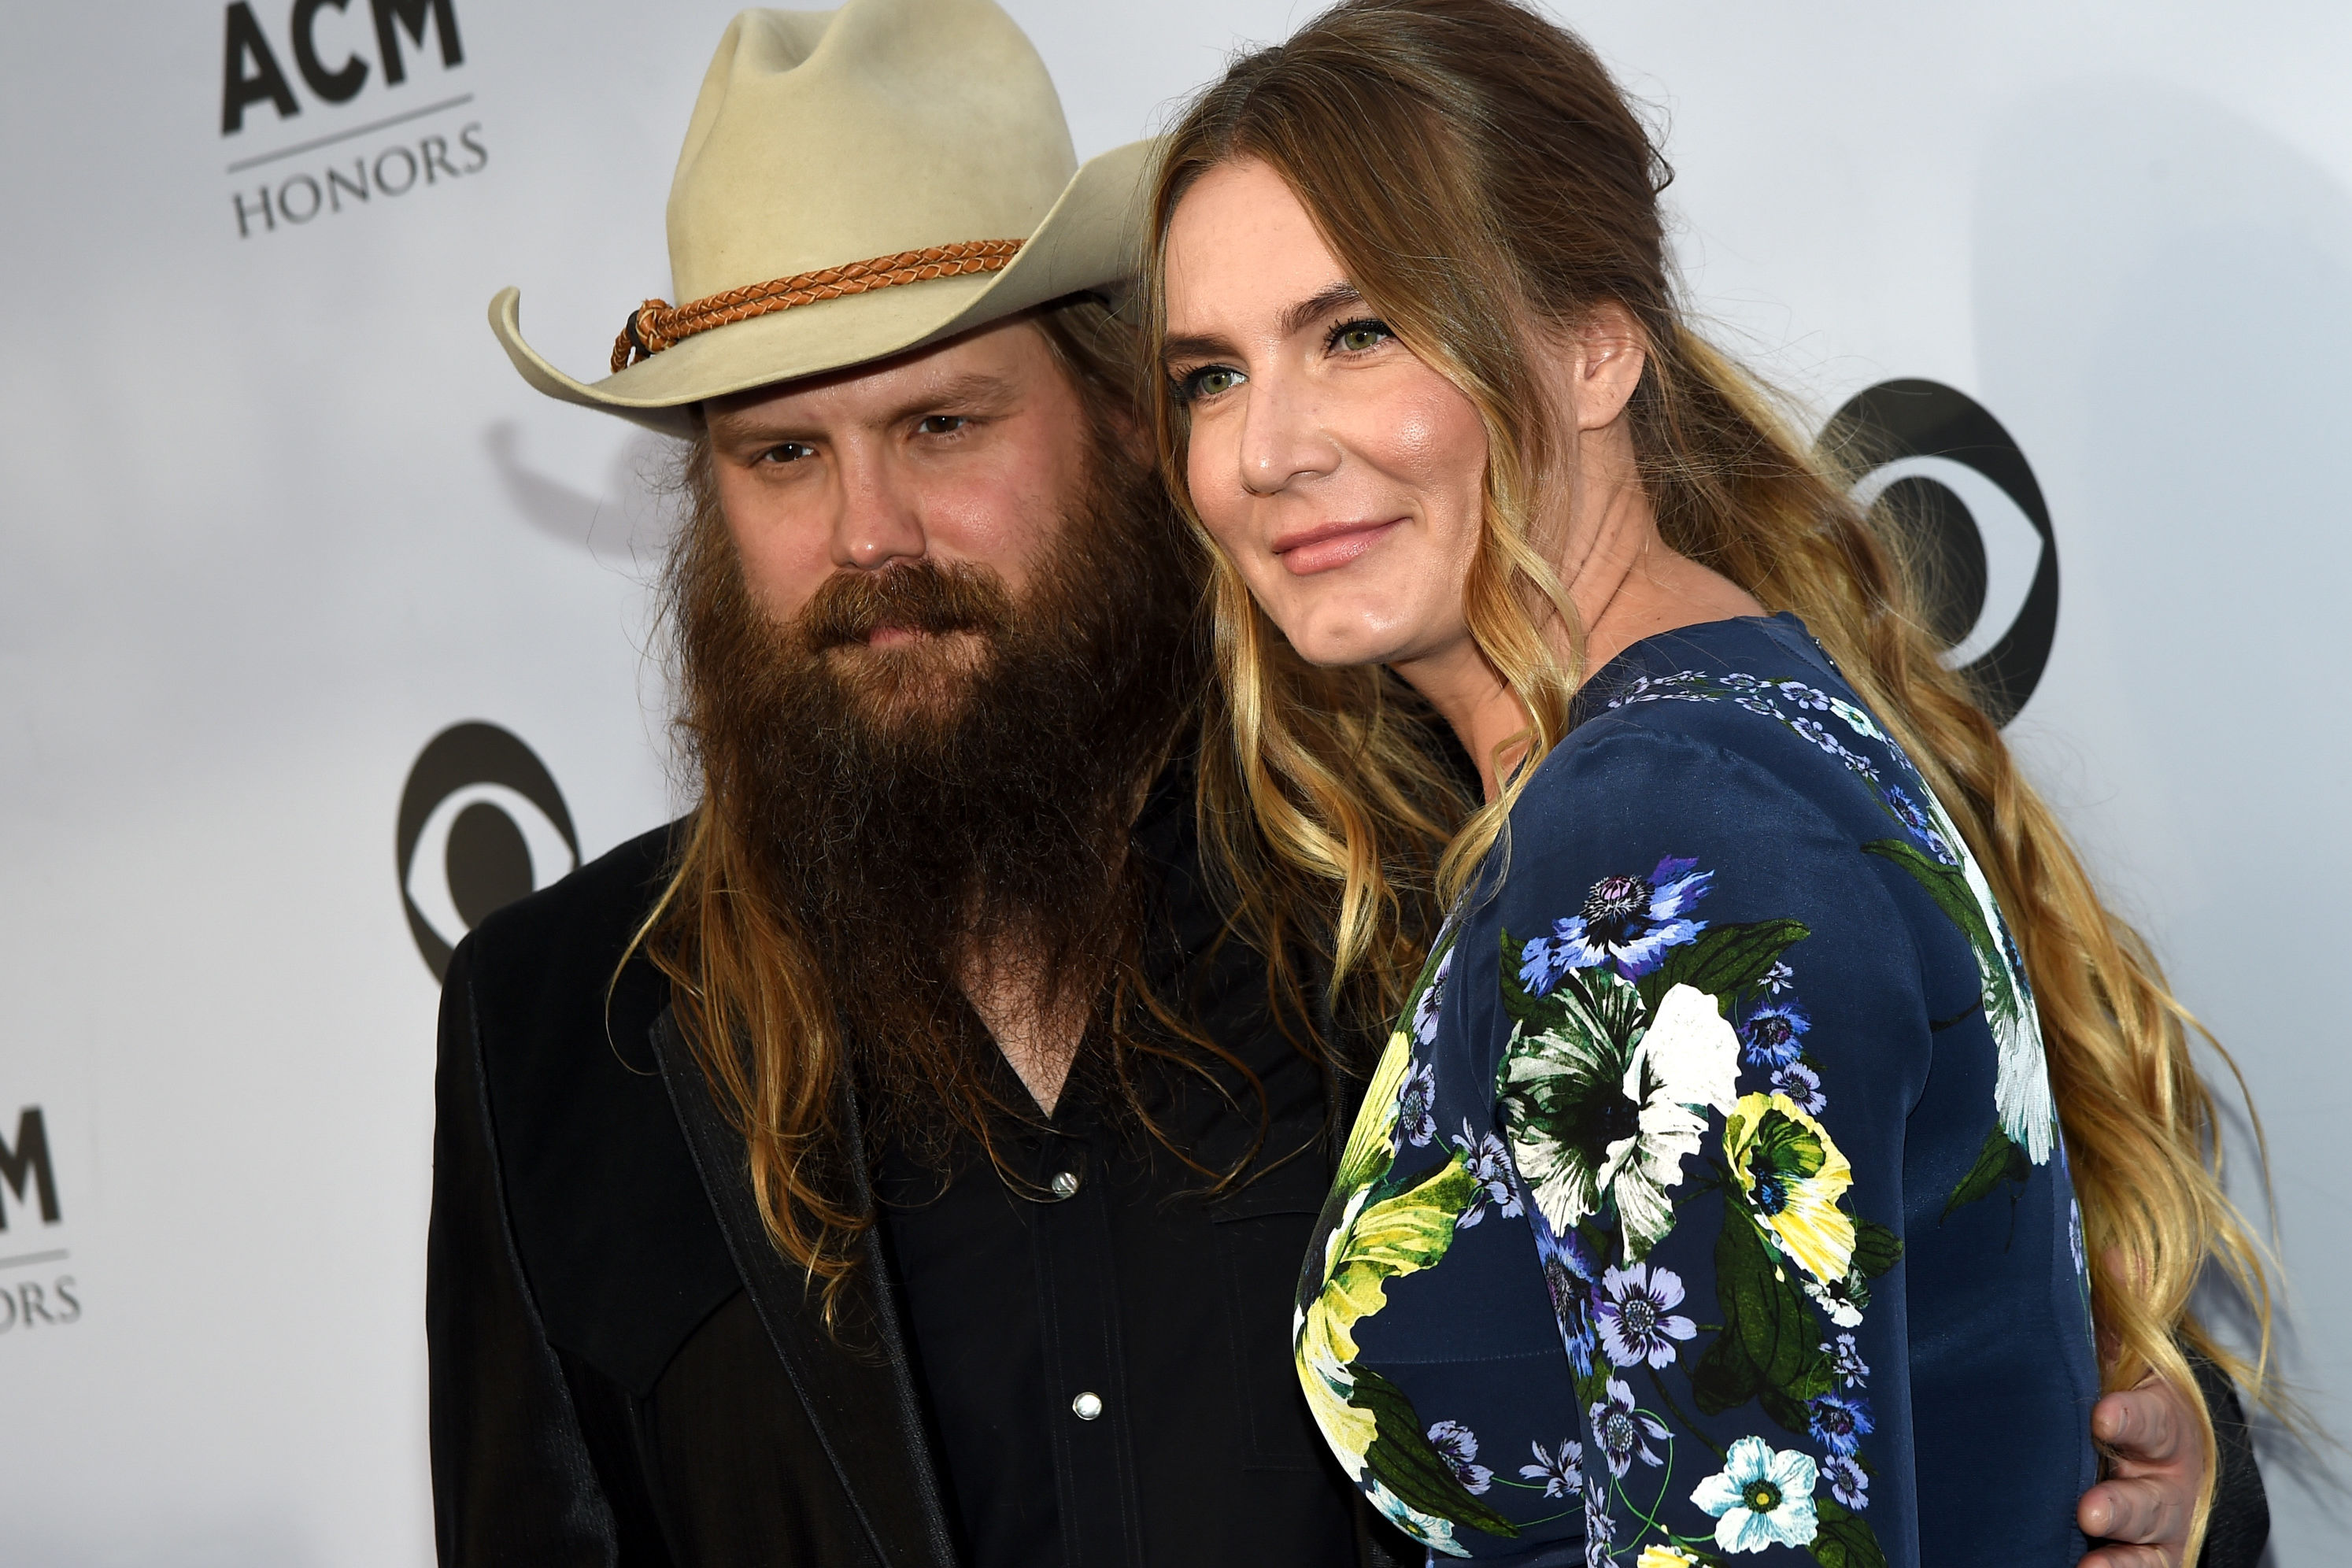 Chris and Morgane Stapleton Make Surprise $10,000 Donation to Lexington Habitat for Humanity